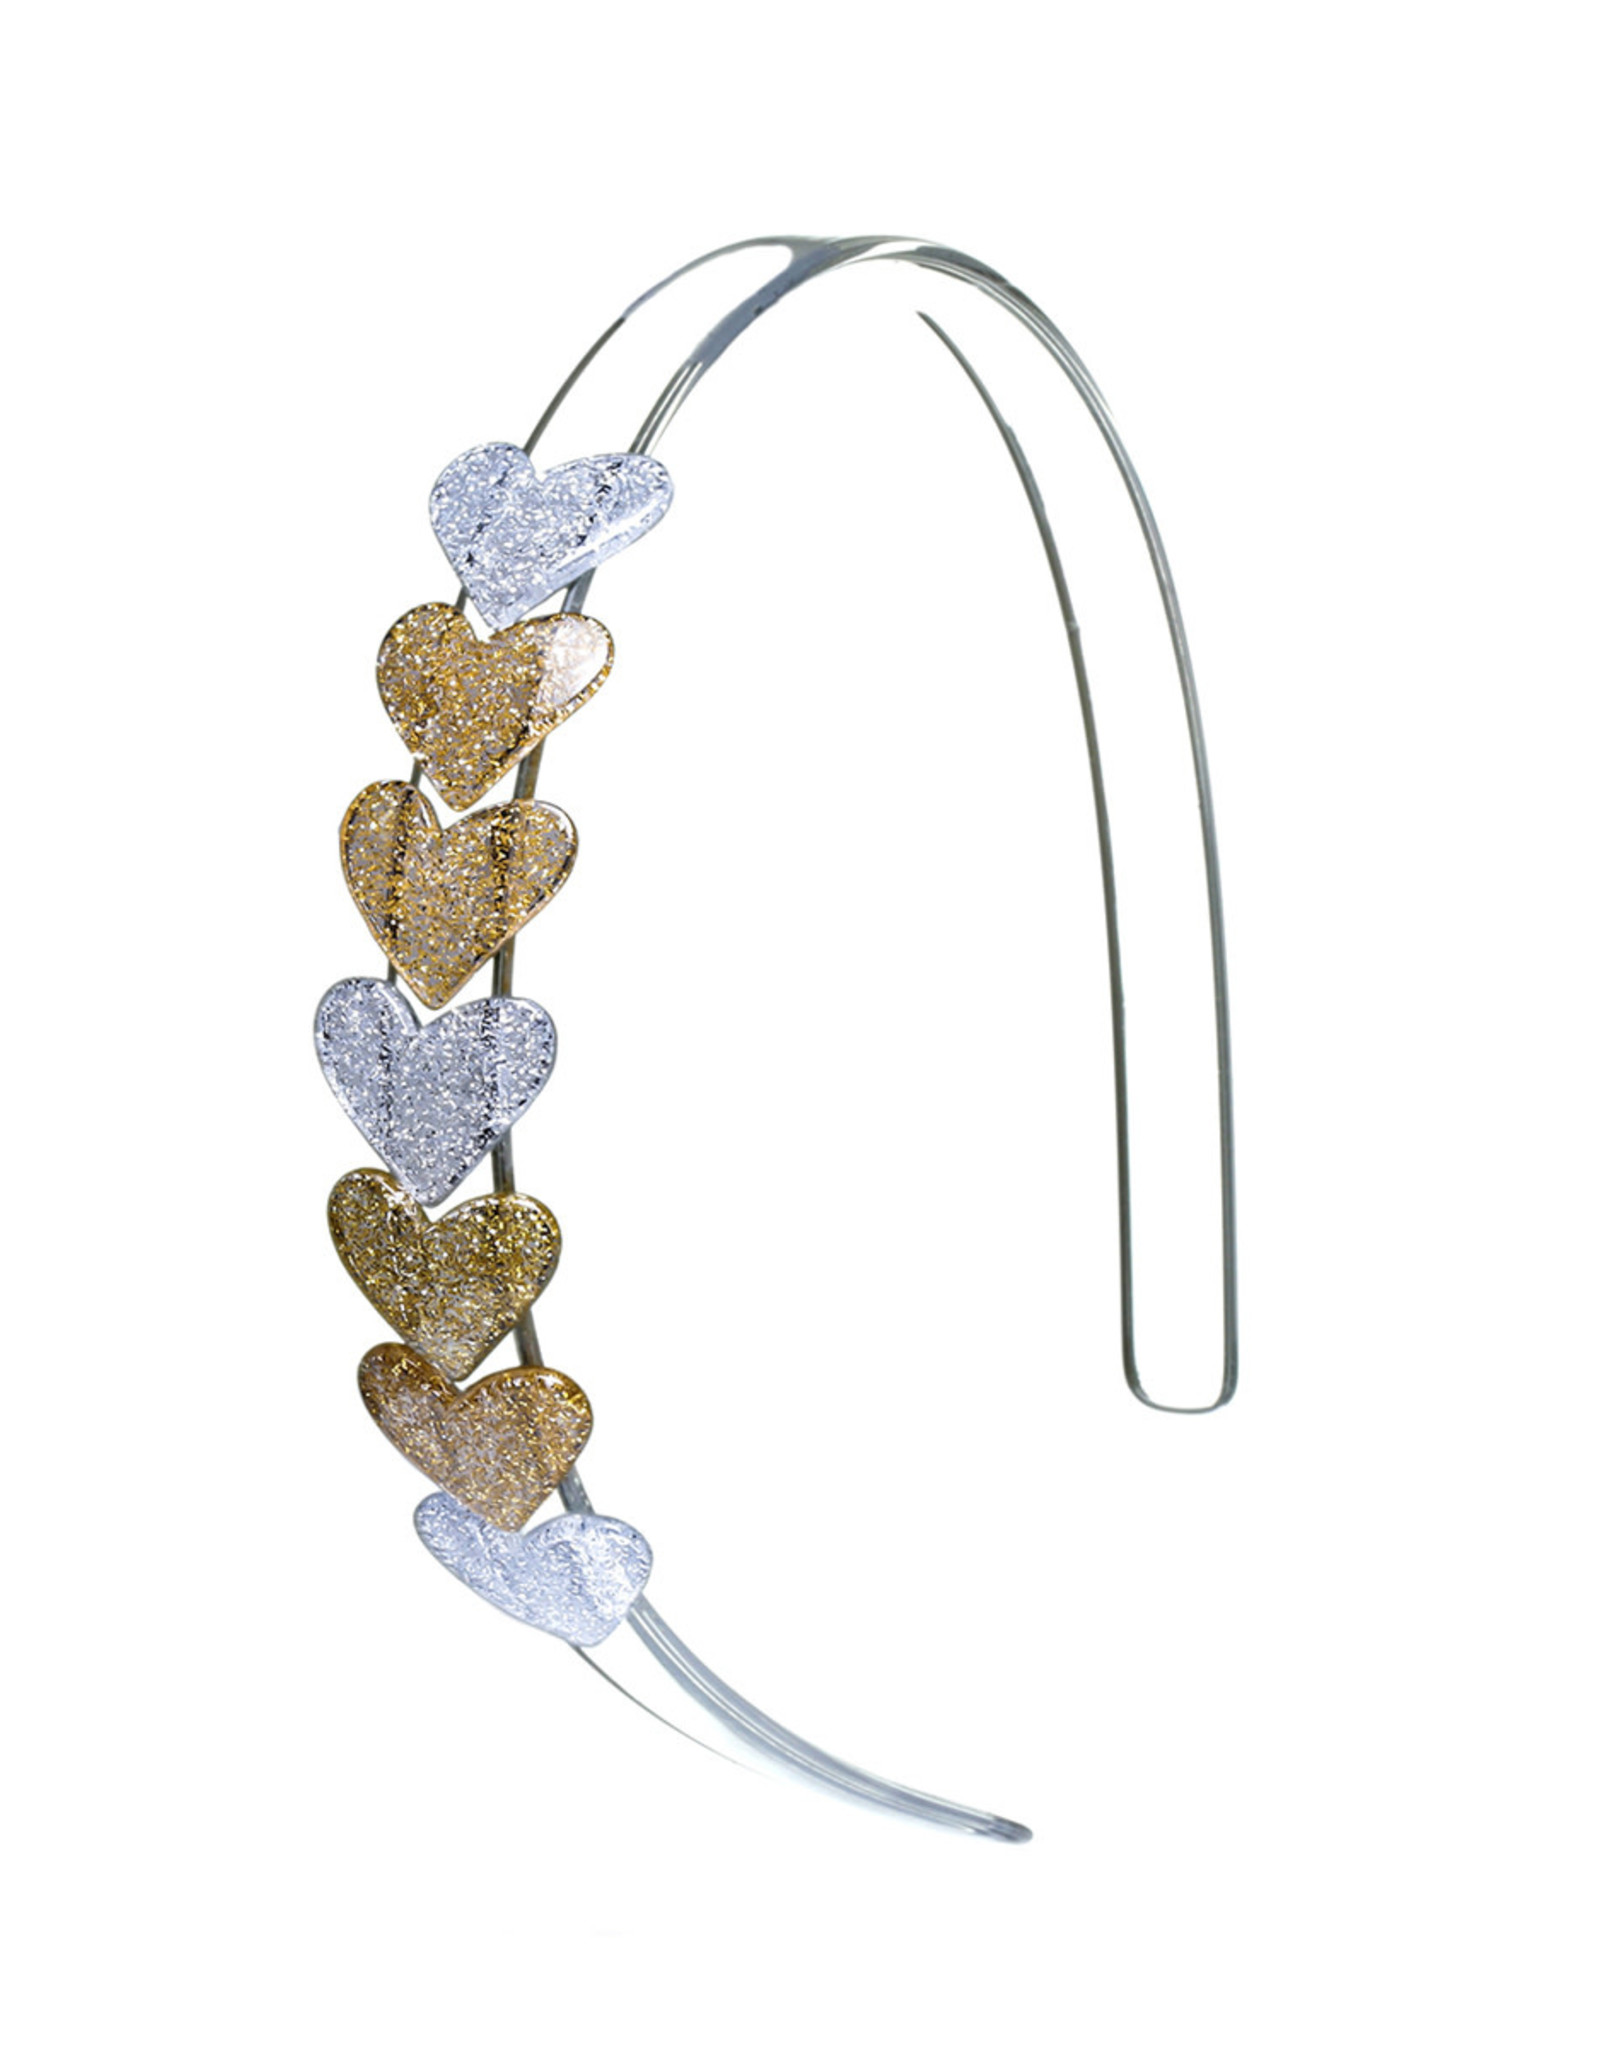 Lilies & Roses HB centipede- gold hearts